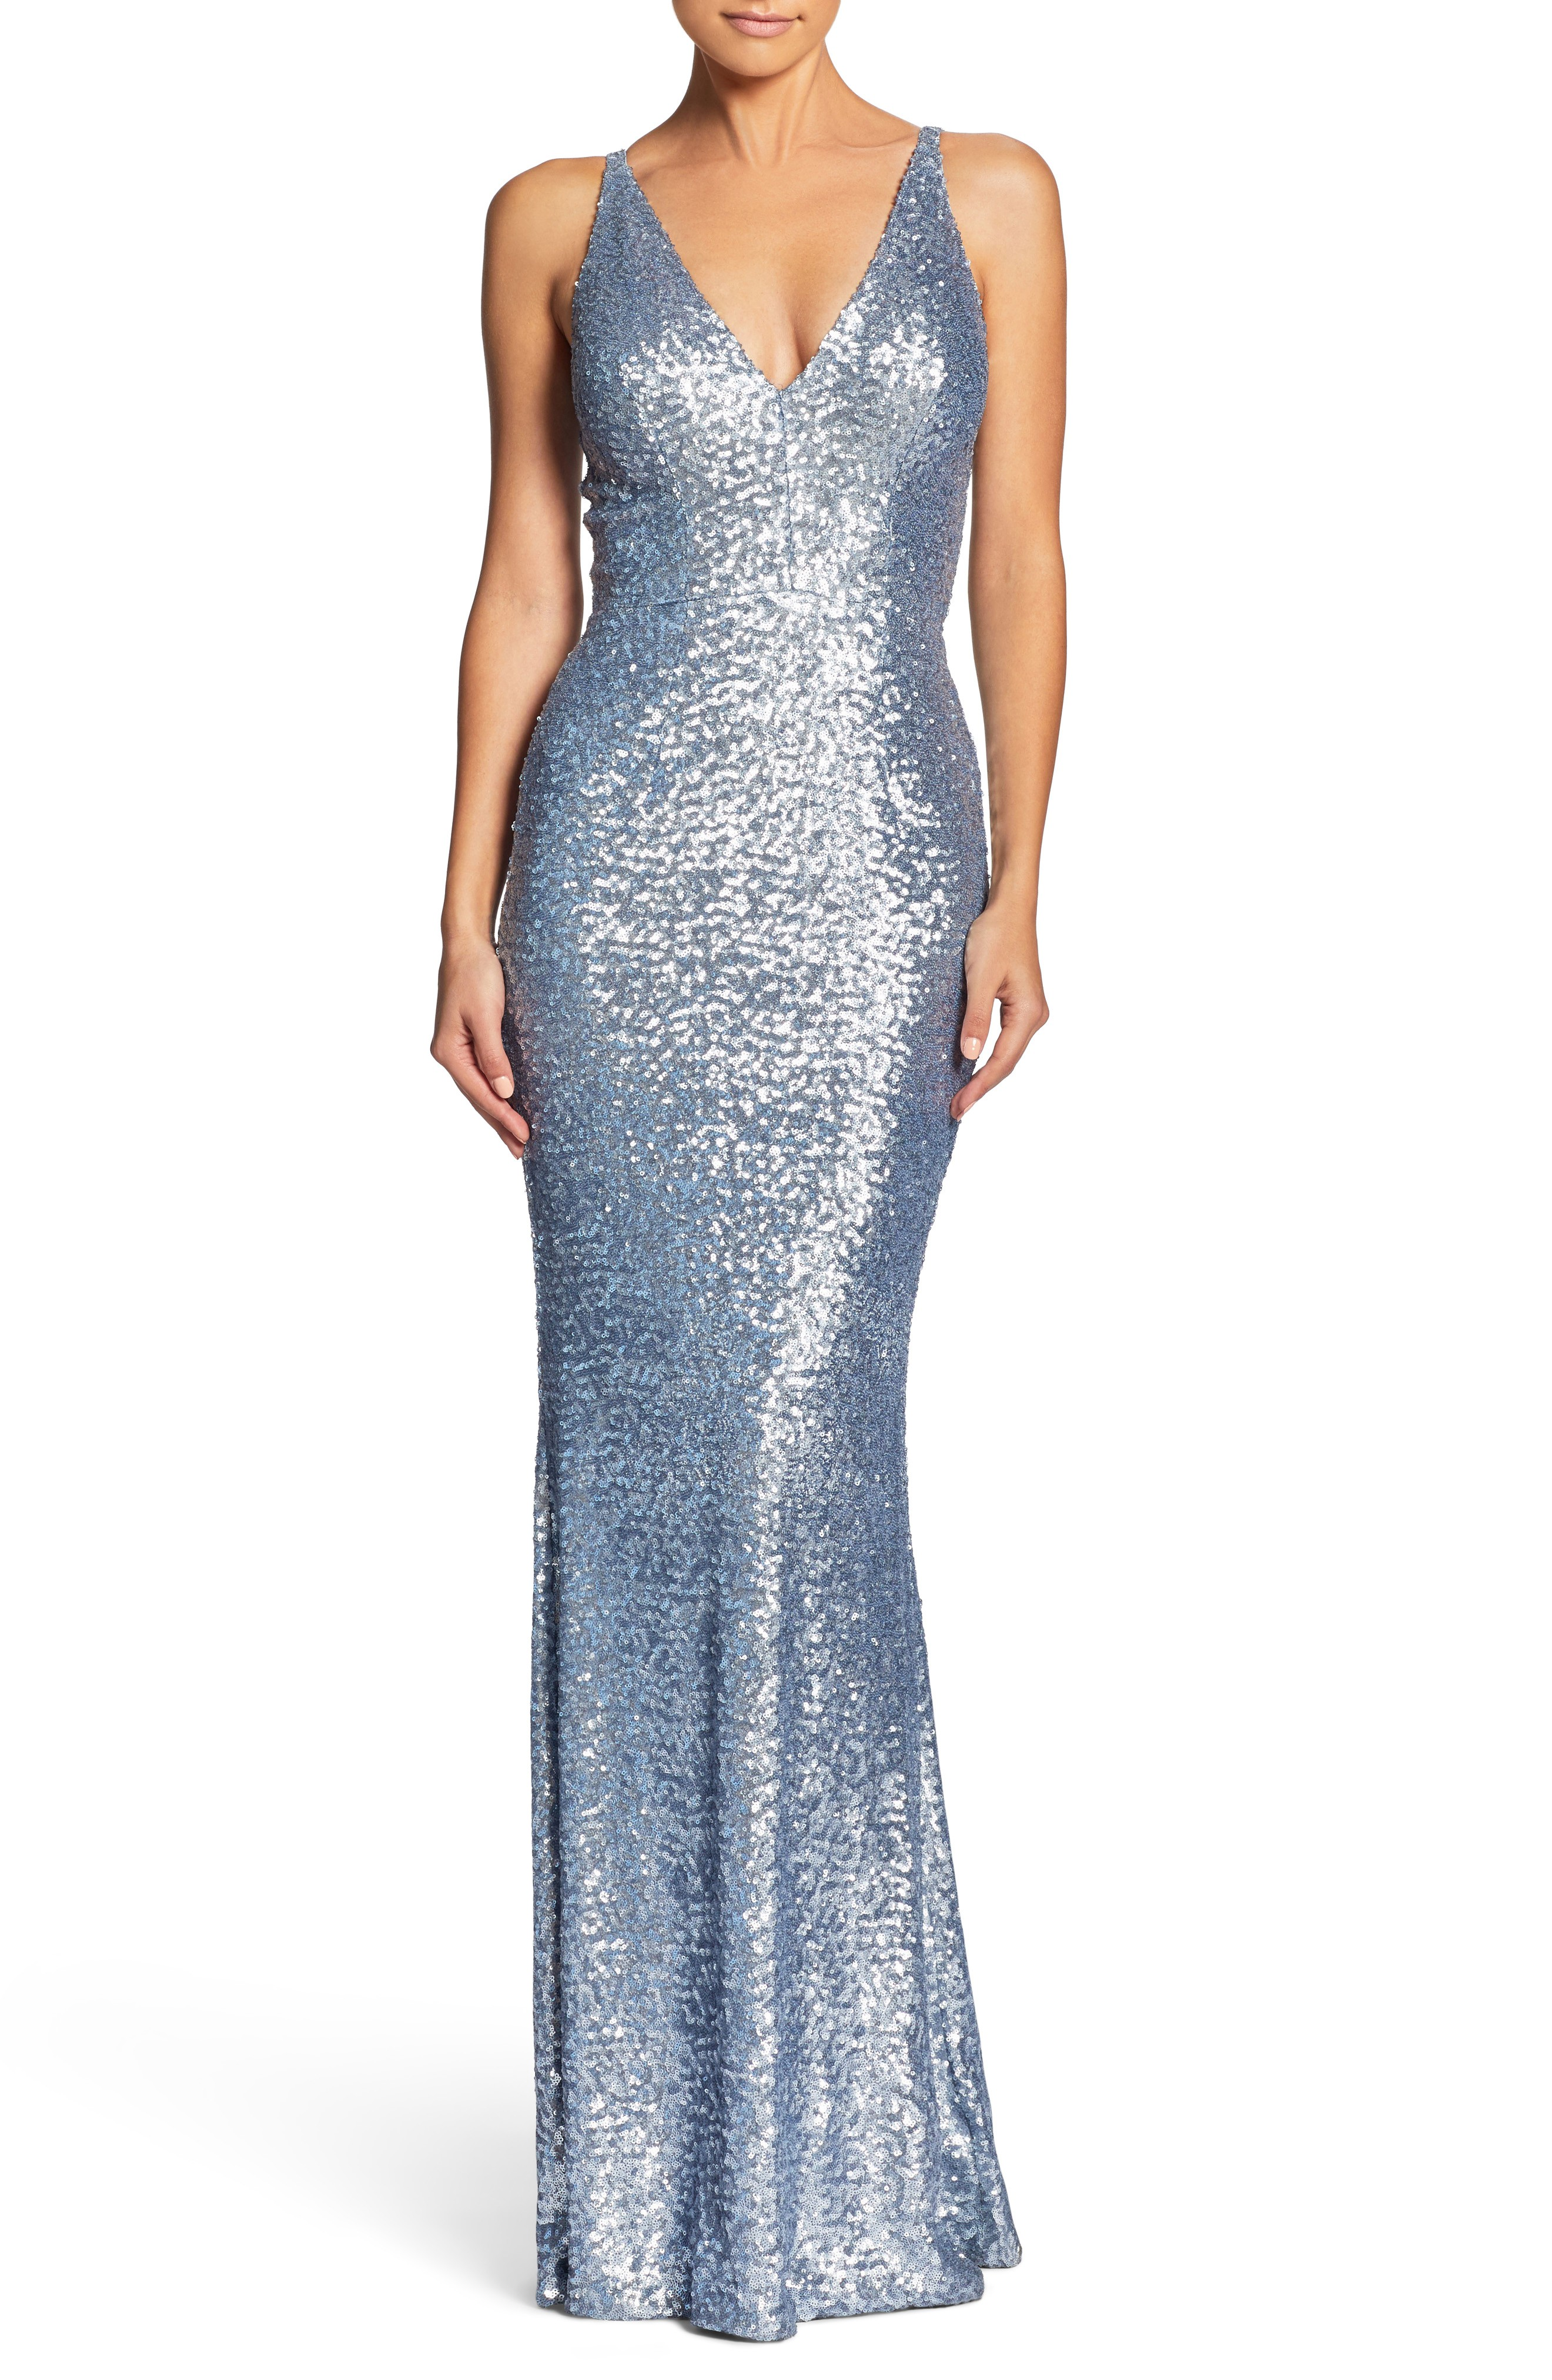 DRESS THE POPULATION Harper Mermaid Ice Blue Gown